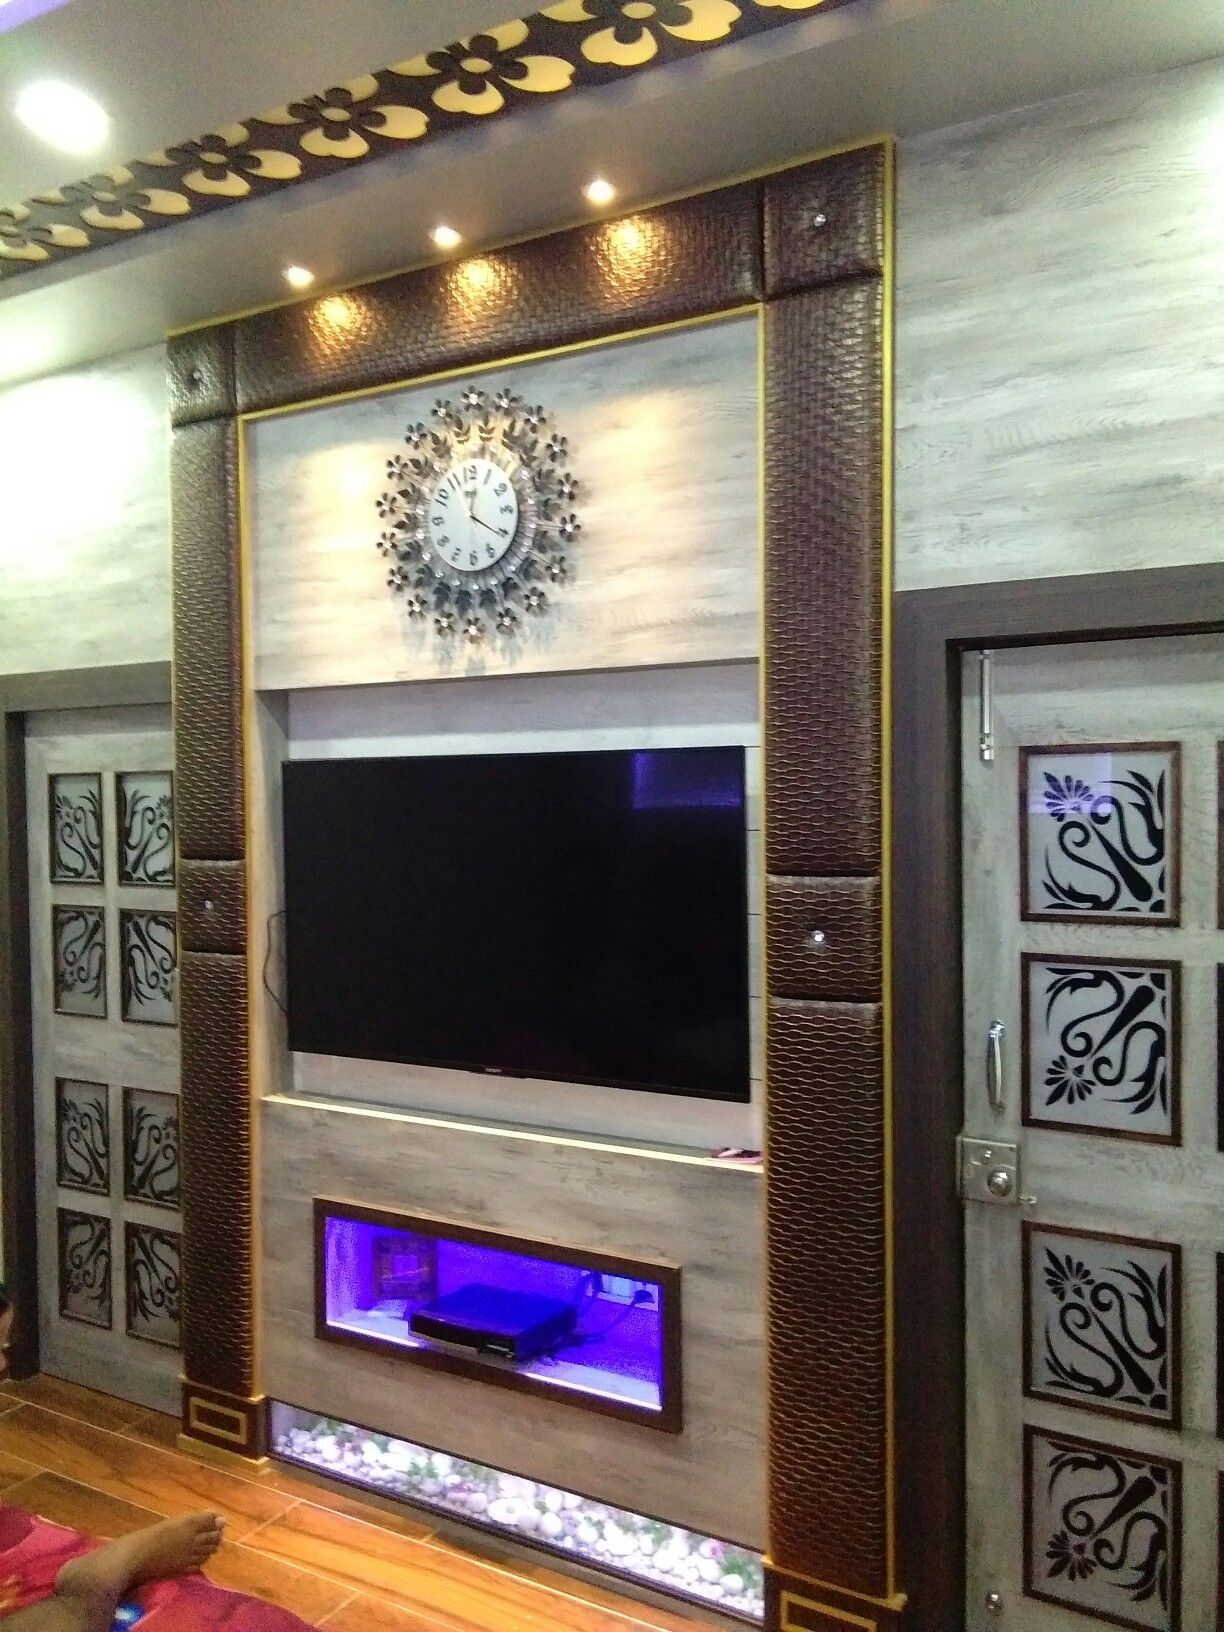 Pin By Mallikarjuna On T V Cabinet: Tv Room Design, Living Room Tv